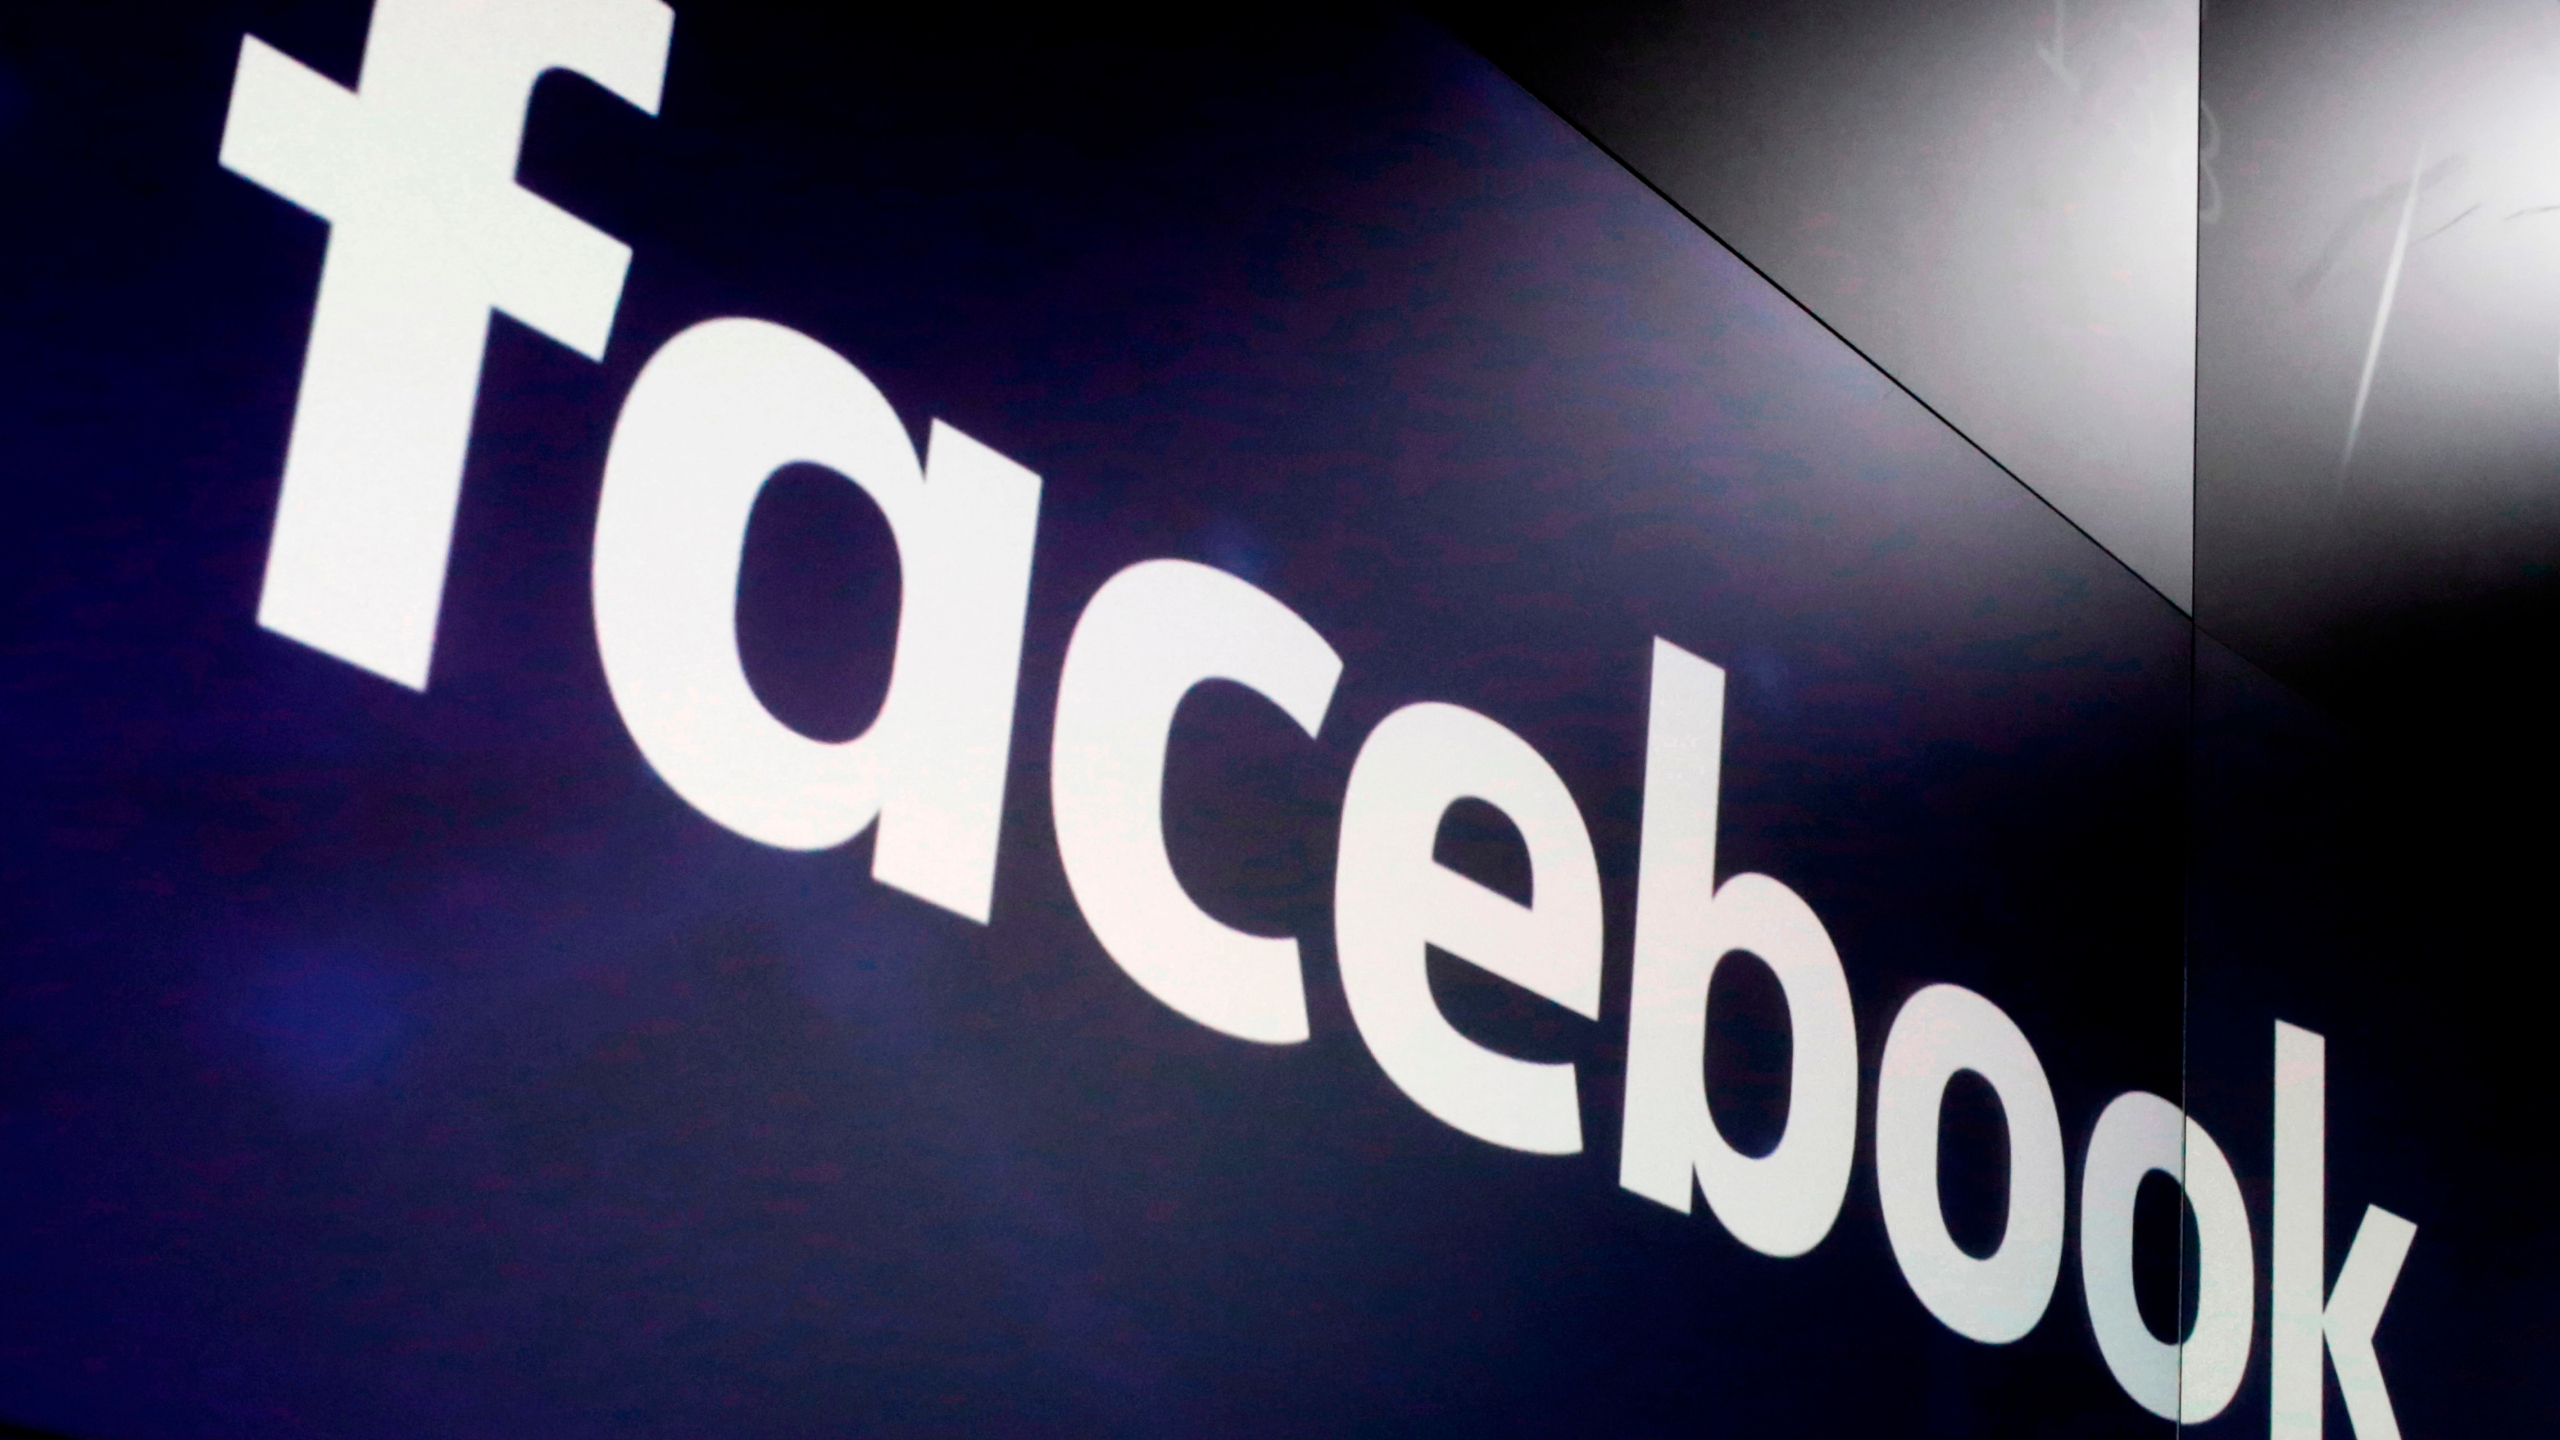 """In this March 29, 2018, file photo, the logo for Facebook appears on screens at the Nasdaq MarketSite in New York's Times Square. Facebook has apologized for putting a """"primates"""" label on a video of Black men, in June 2021, according to a report in the New York Times. (AP Photo/Richard Drew, File)"""